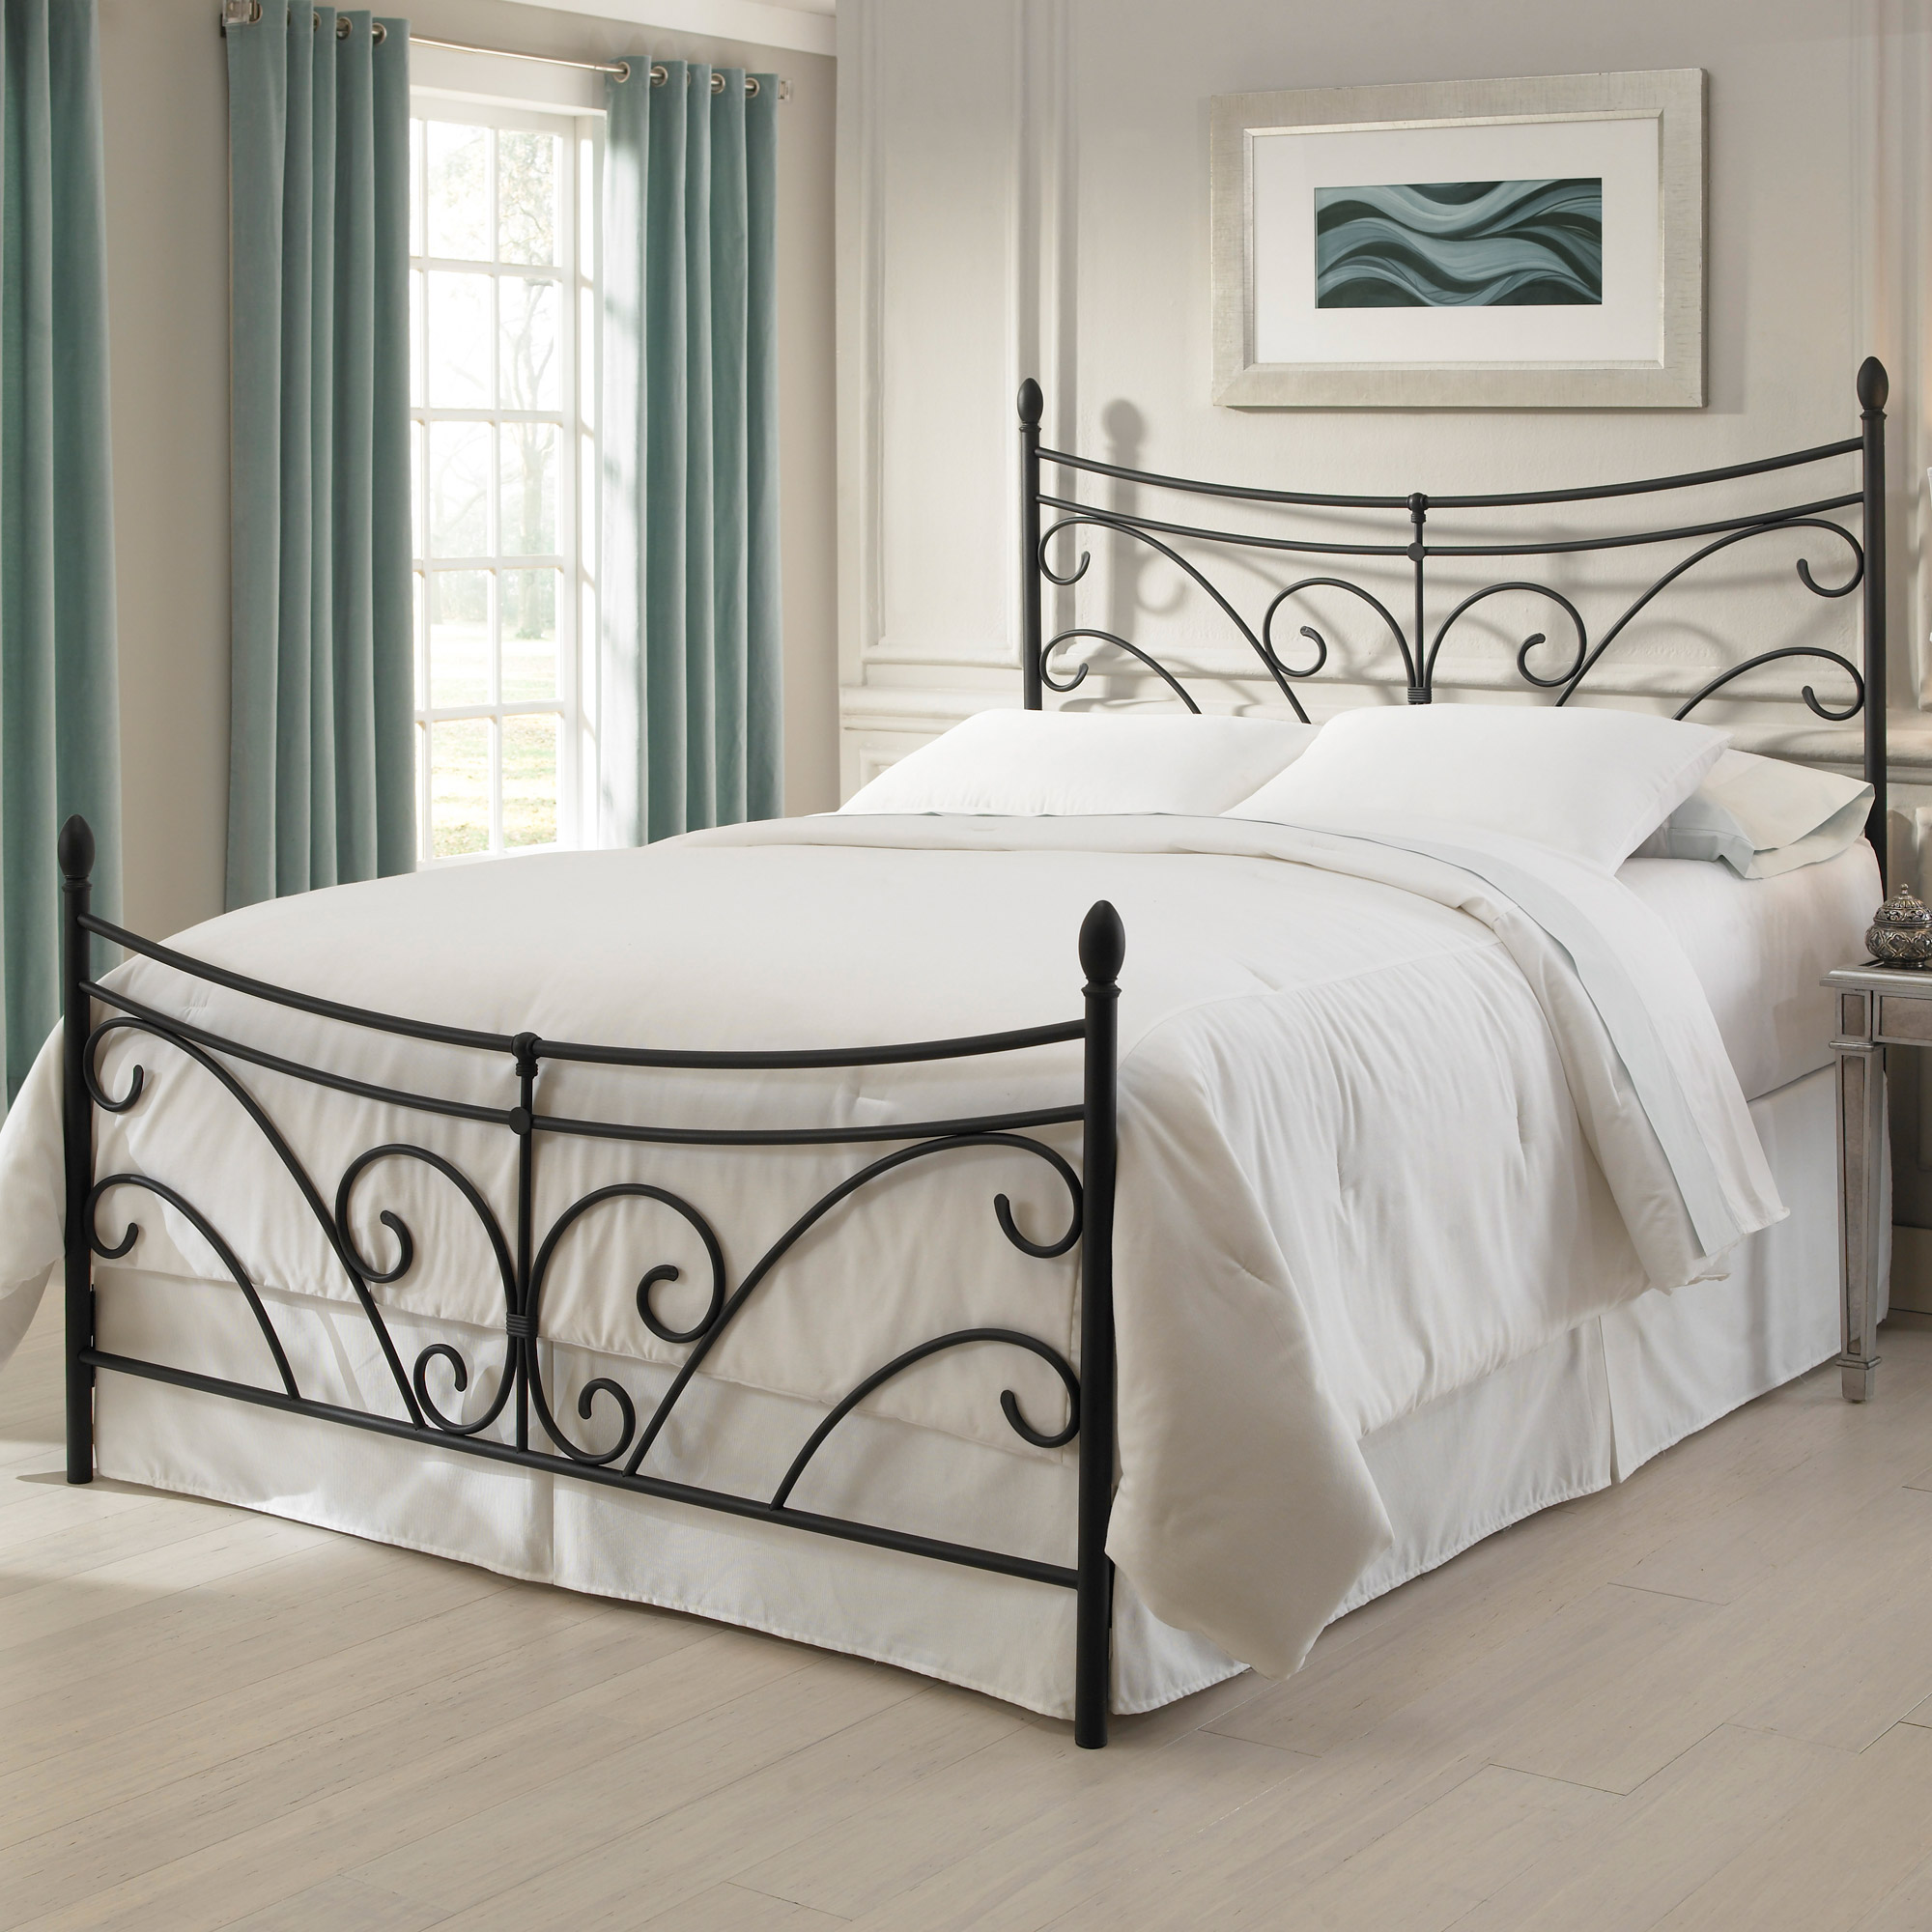 wrought iron headboard  roselawnlutheran, Headboard designs